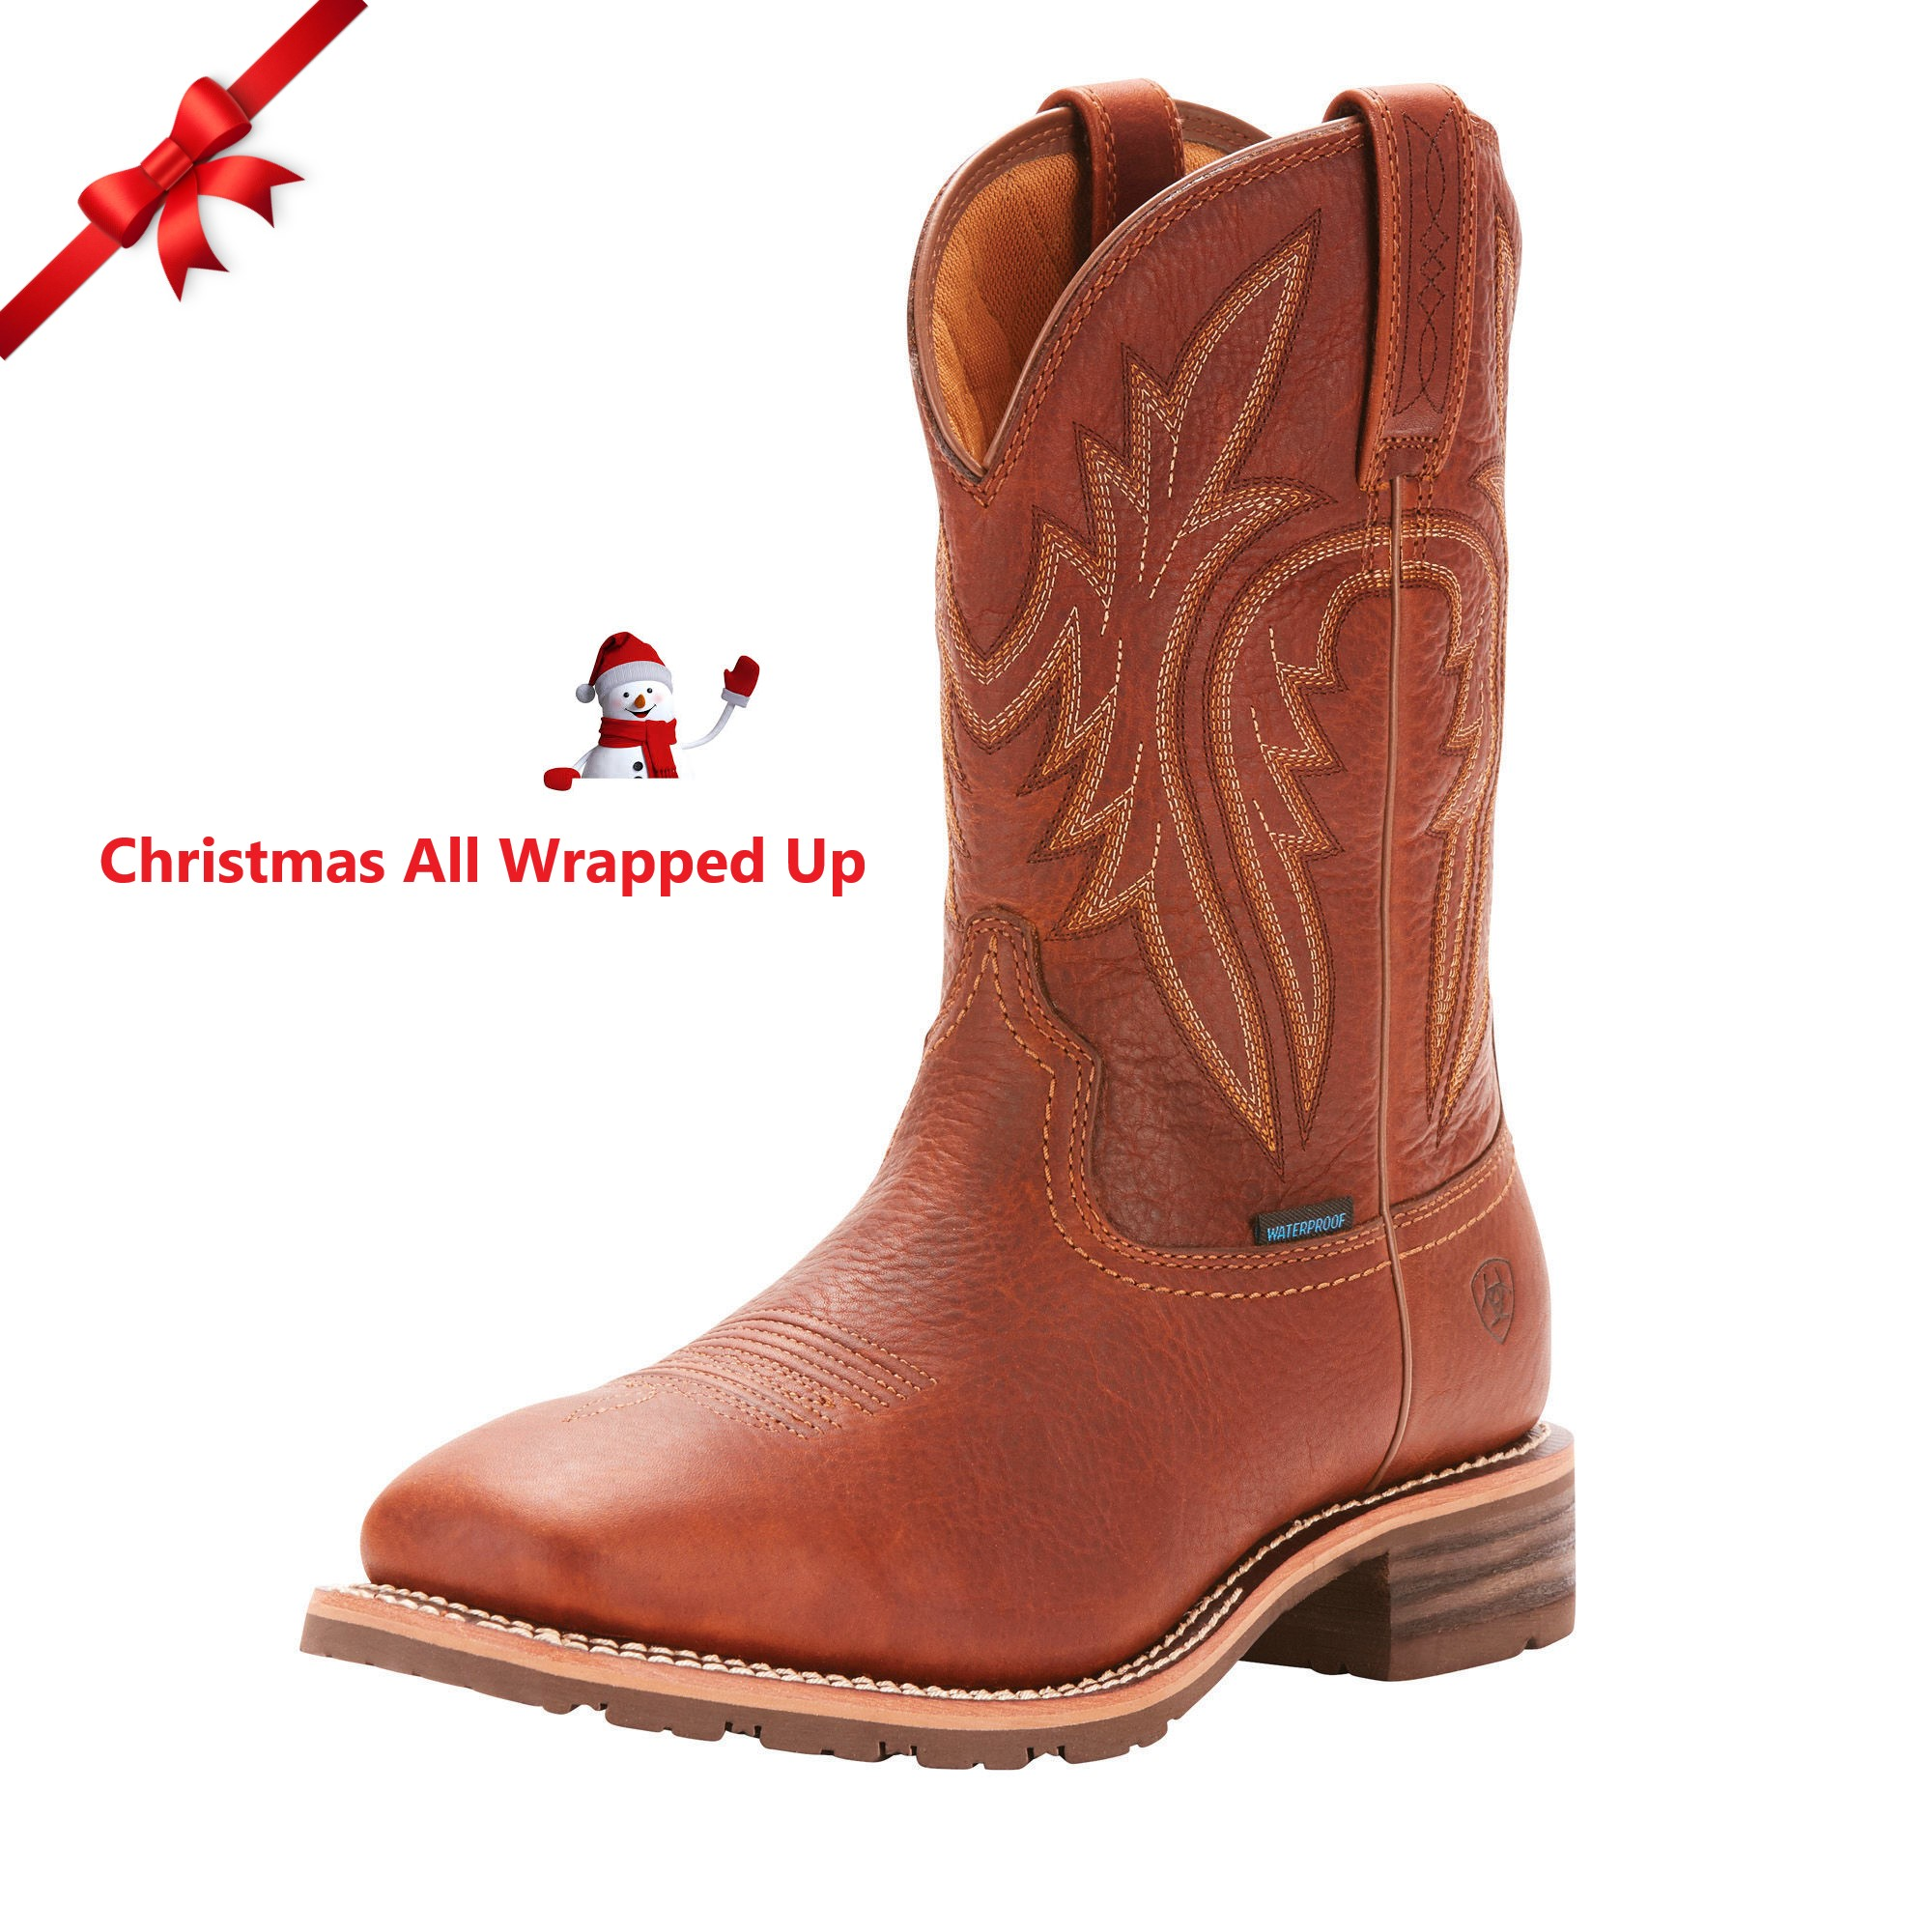 - Order yours now at www.Sarade.co.uk Or Call 01489 809111Full Range of English & Western Boots and Apparel.All Major Credit & Debit Cards Accepted.Fast Free Delivery